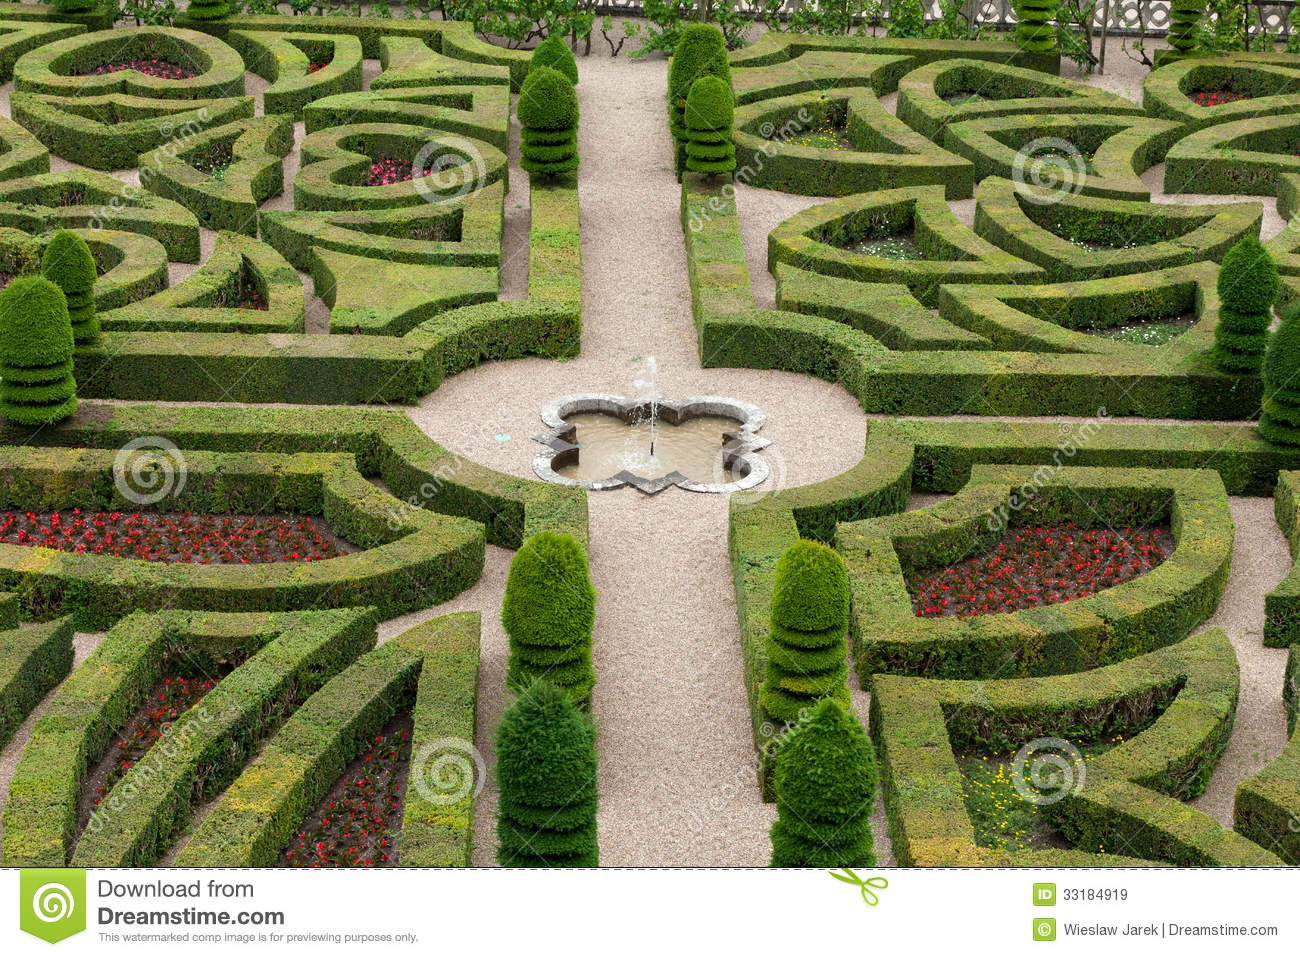 Decorative Gardens Royalty Free Stock Images - Image: 33184919